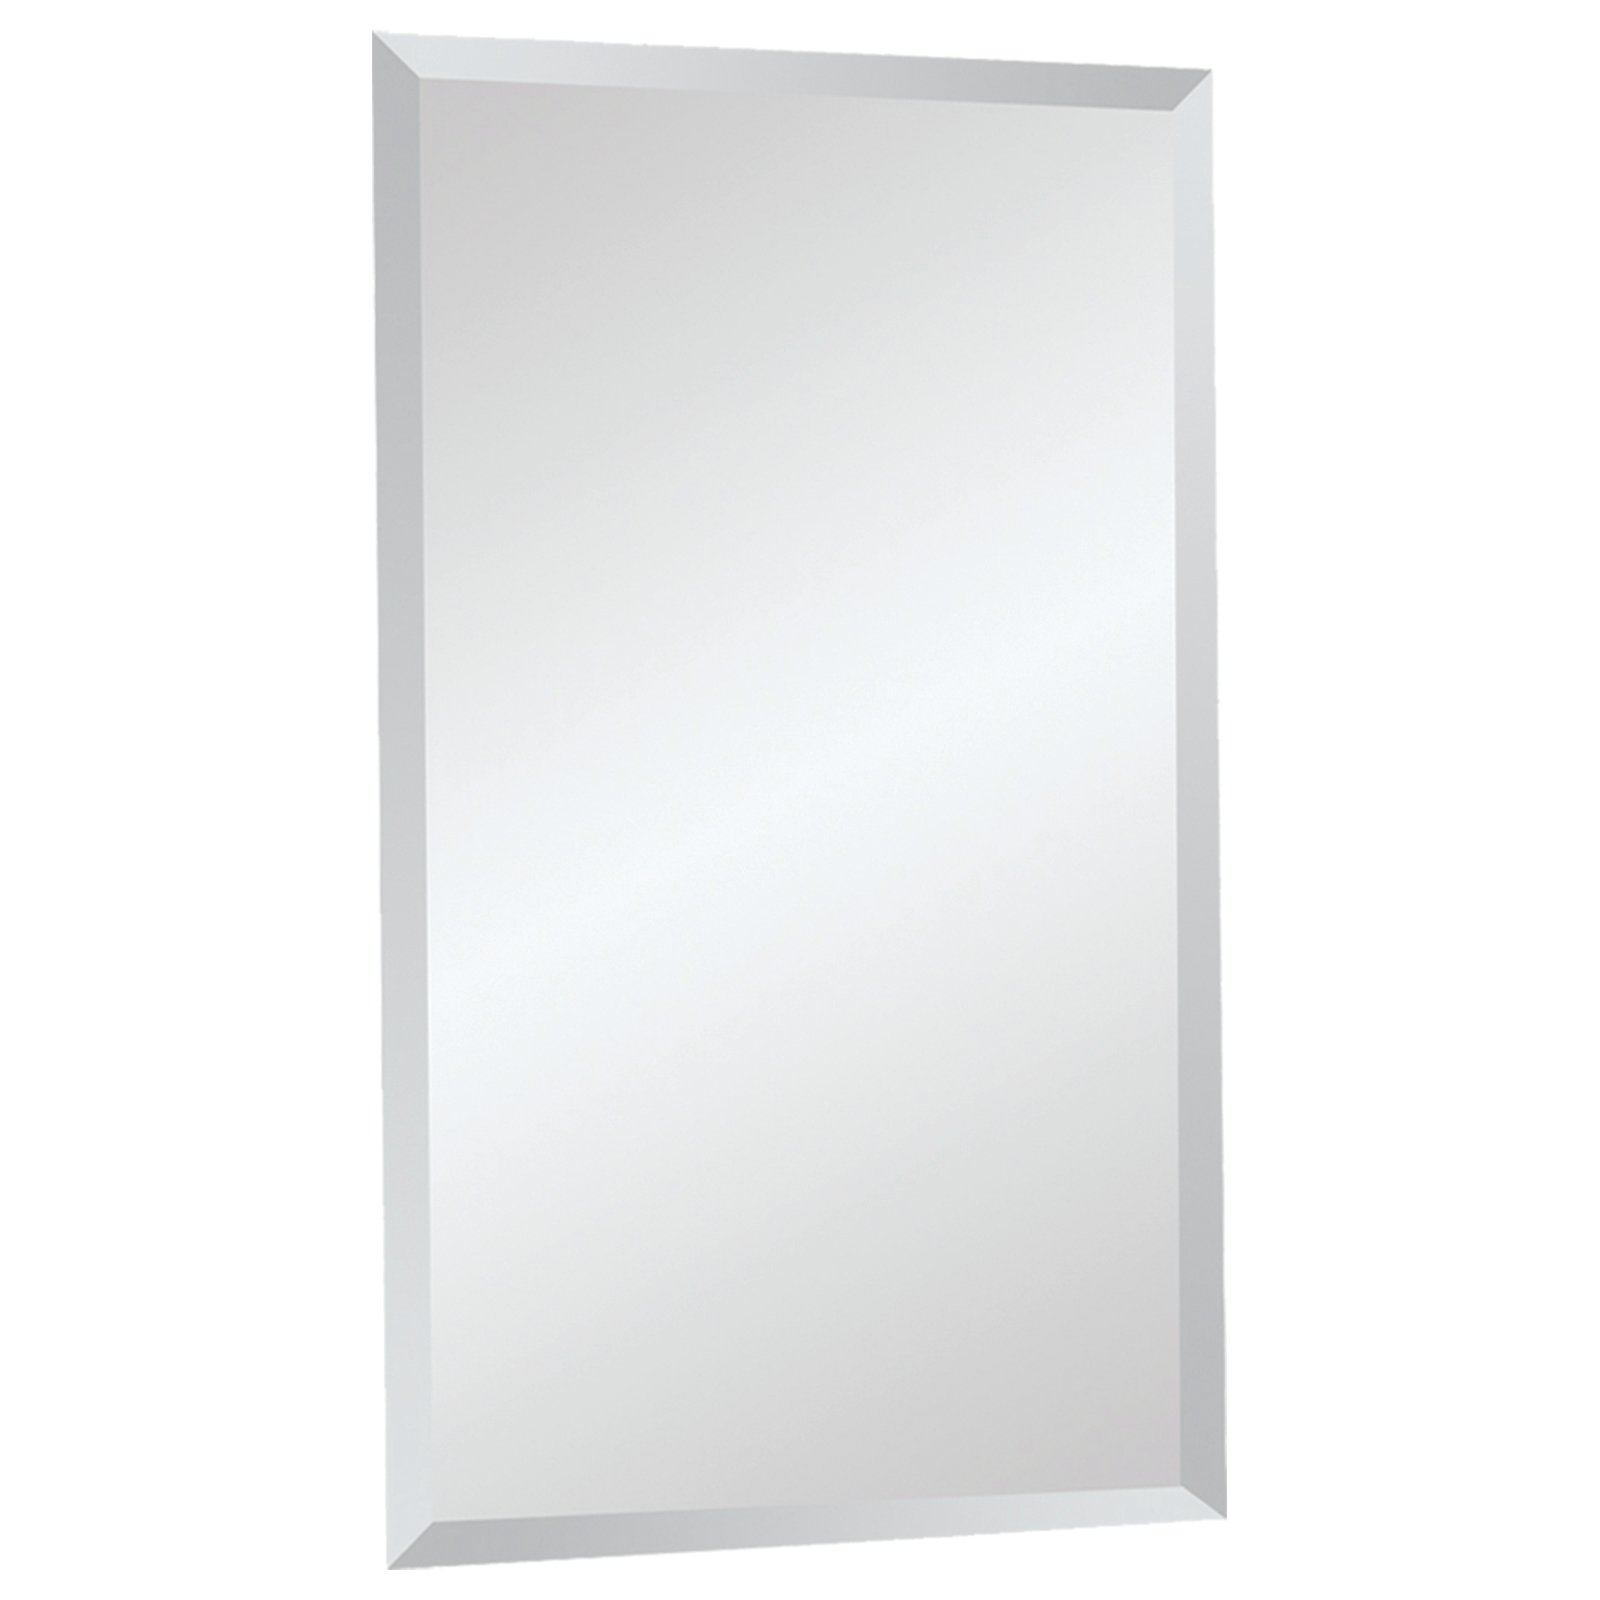 Frameless Mirrors Youll Love Wayfair For Wall Mirror No Frame (Image 4 of 15)